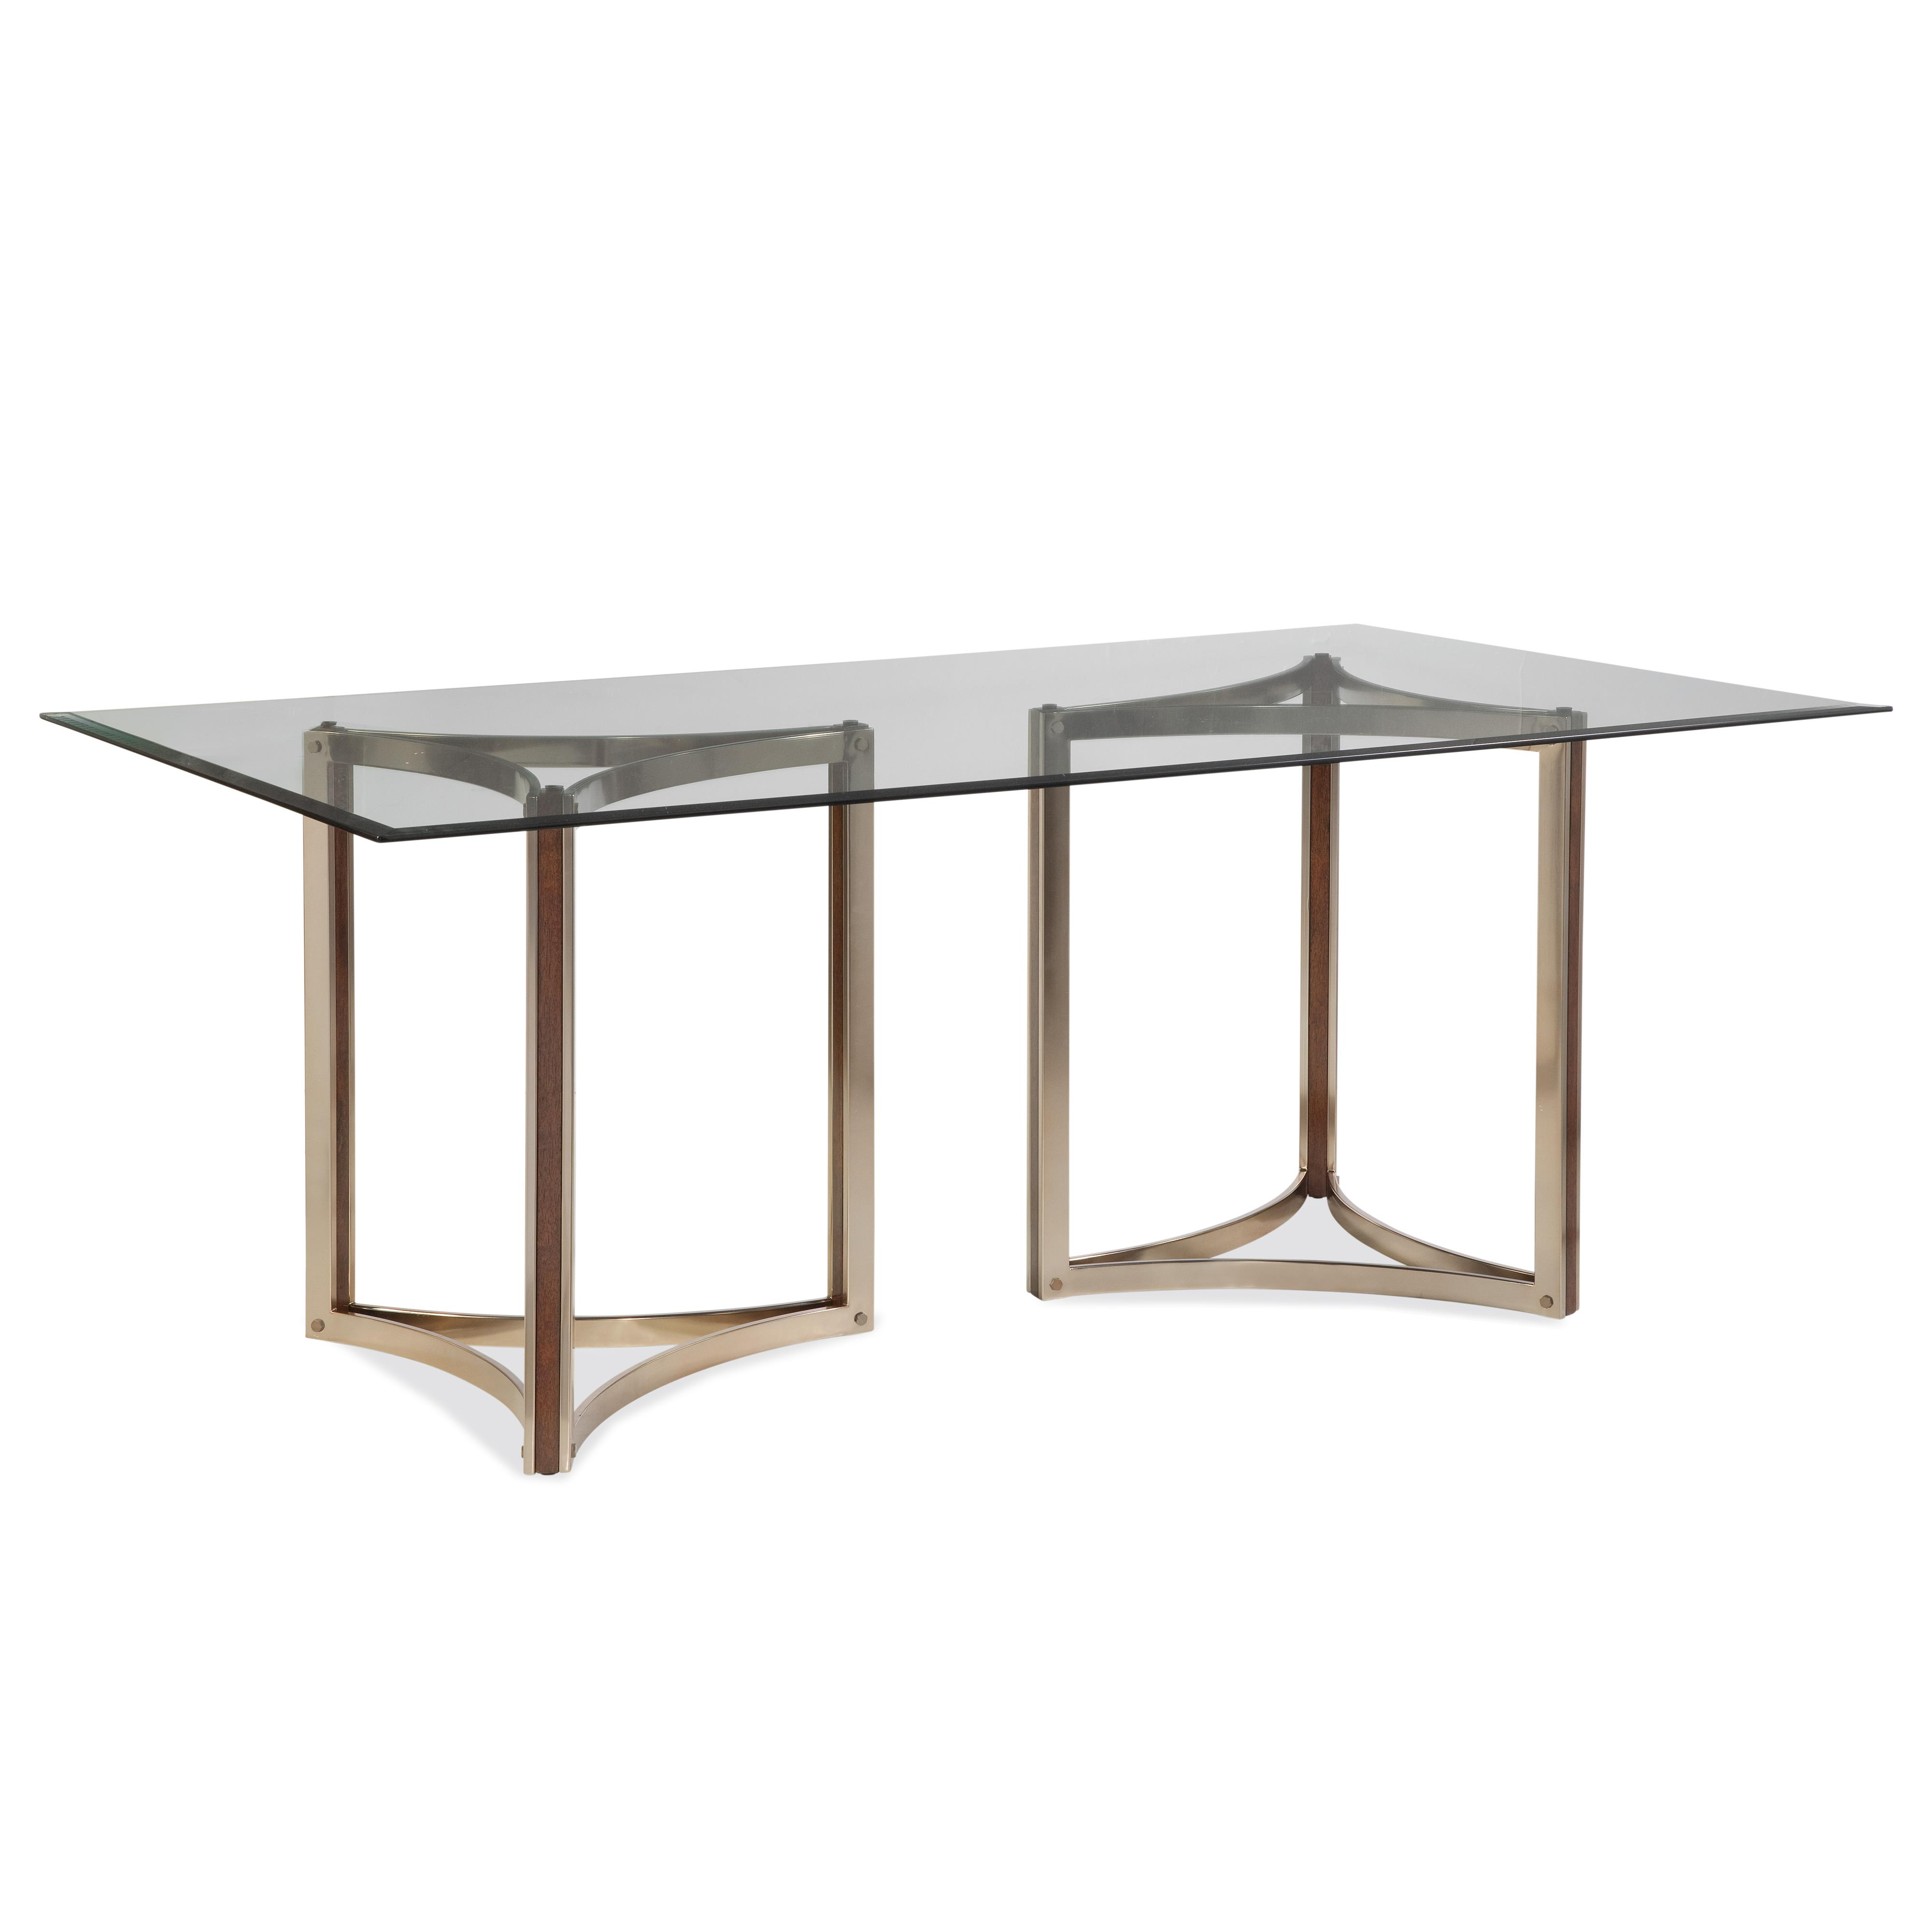 Thoroughly Modern Cornell Dining Table by Bassett Mirror at Alison Craig Home Furnishings